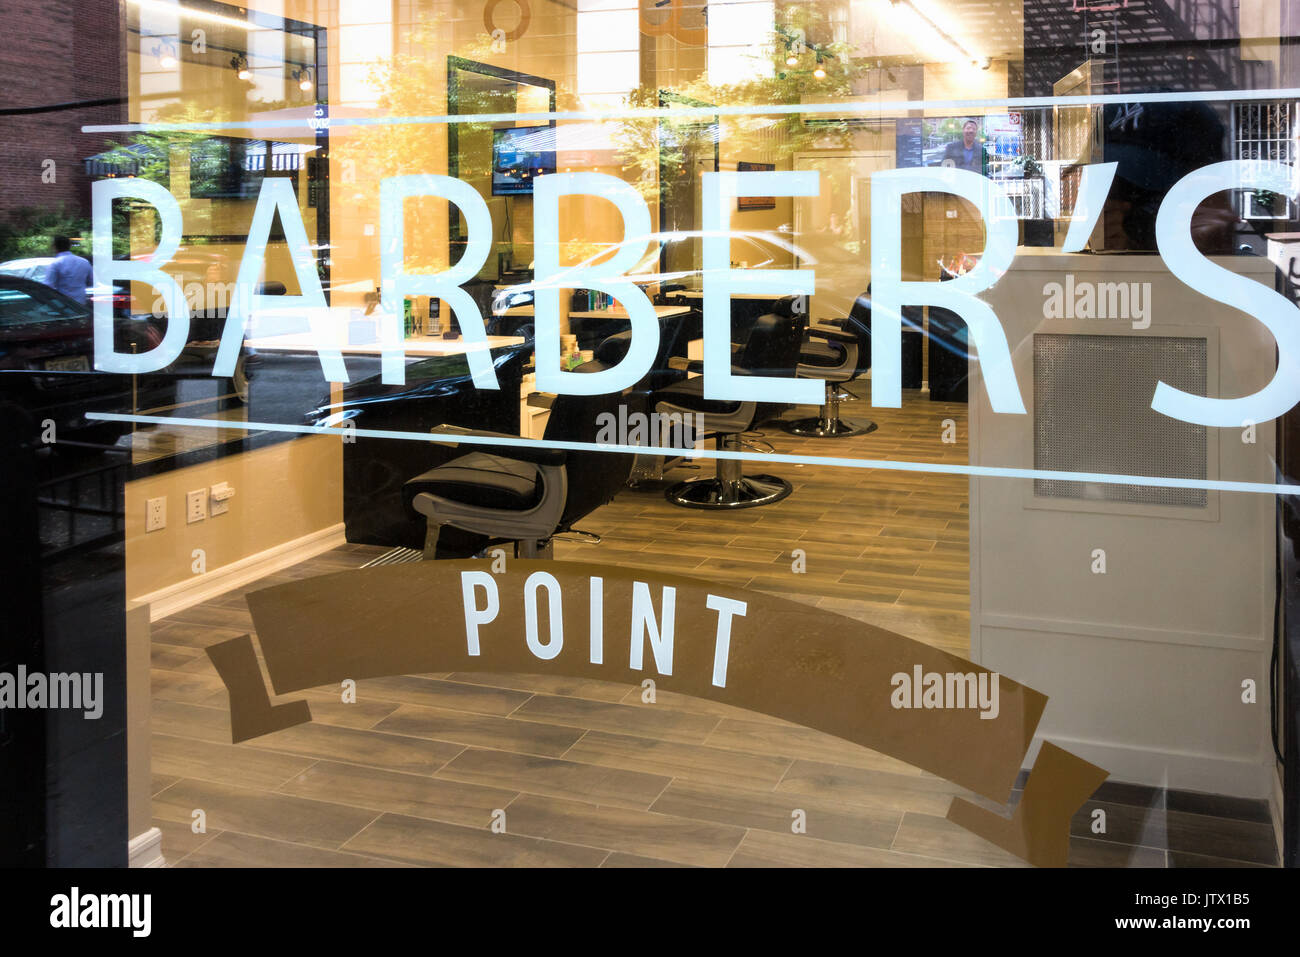 Barber's Point, a new SoHo shop in Lower Manhattan, opened in the summer of 2017 to cut men's hair and trim beards Stock Photo